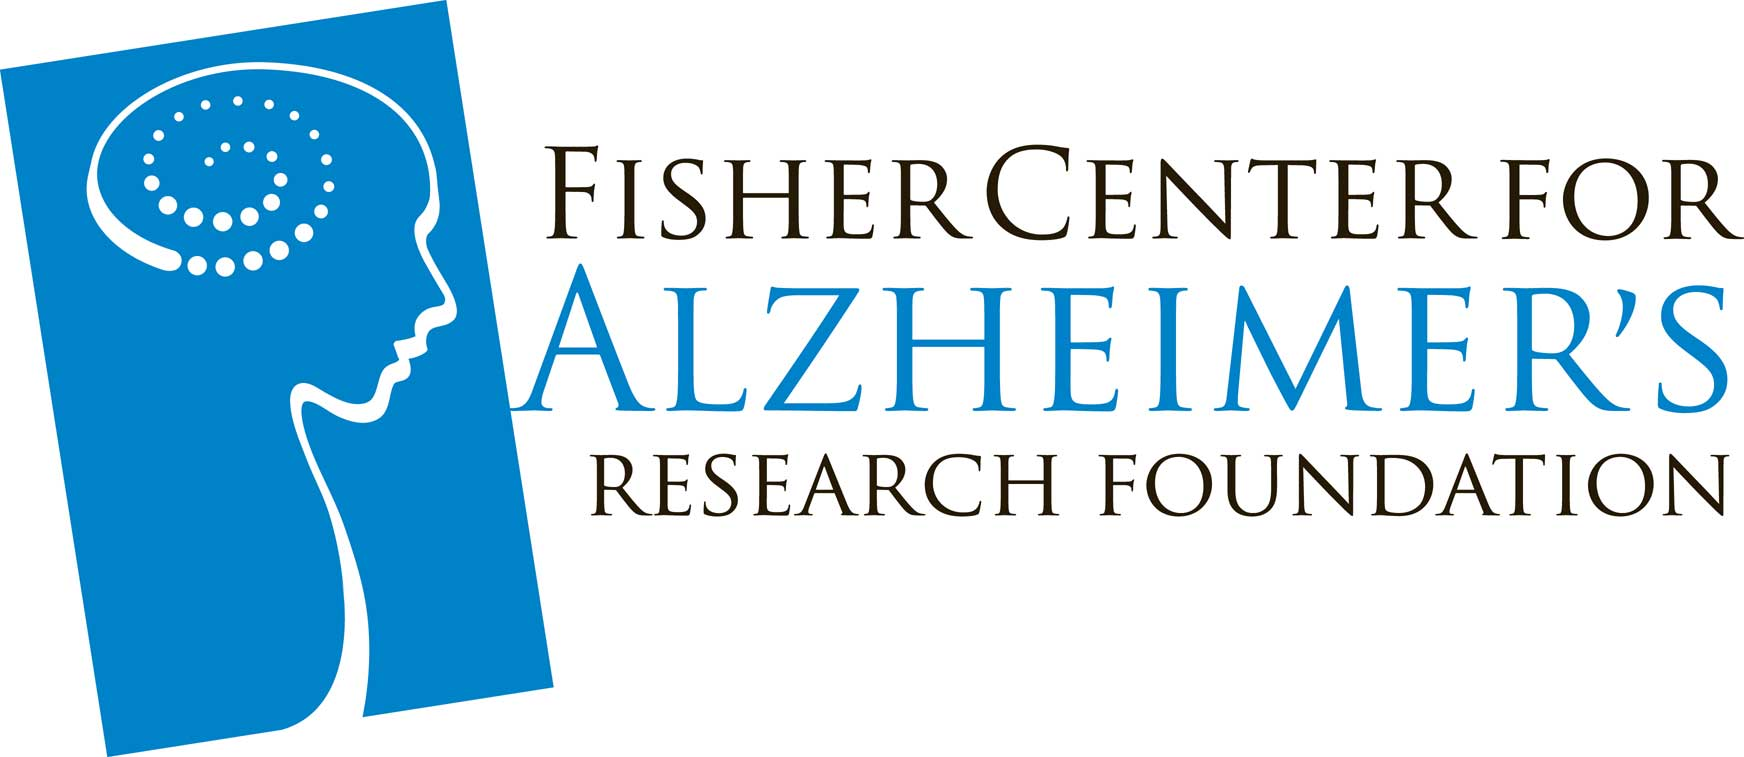 Fisher Center for Alzheimer's Research Foundation